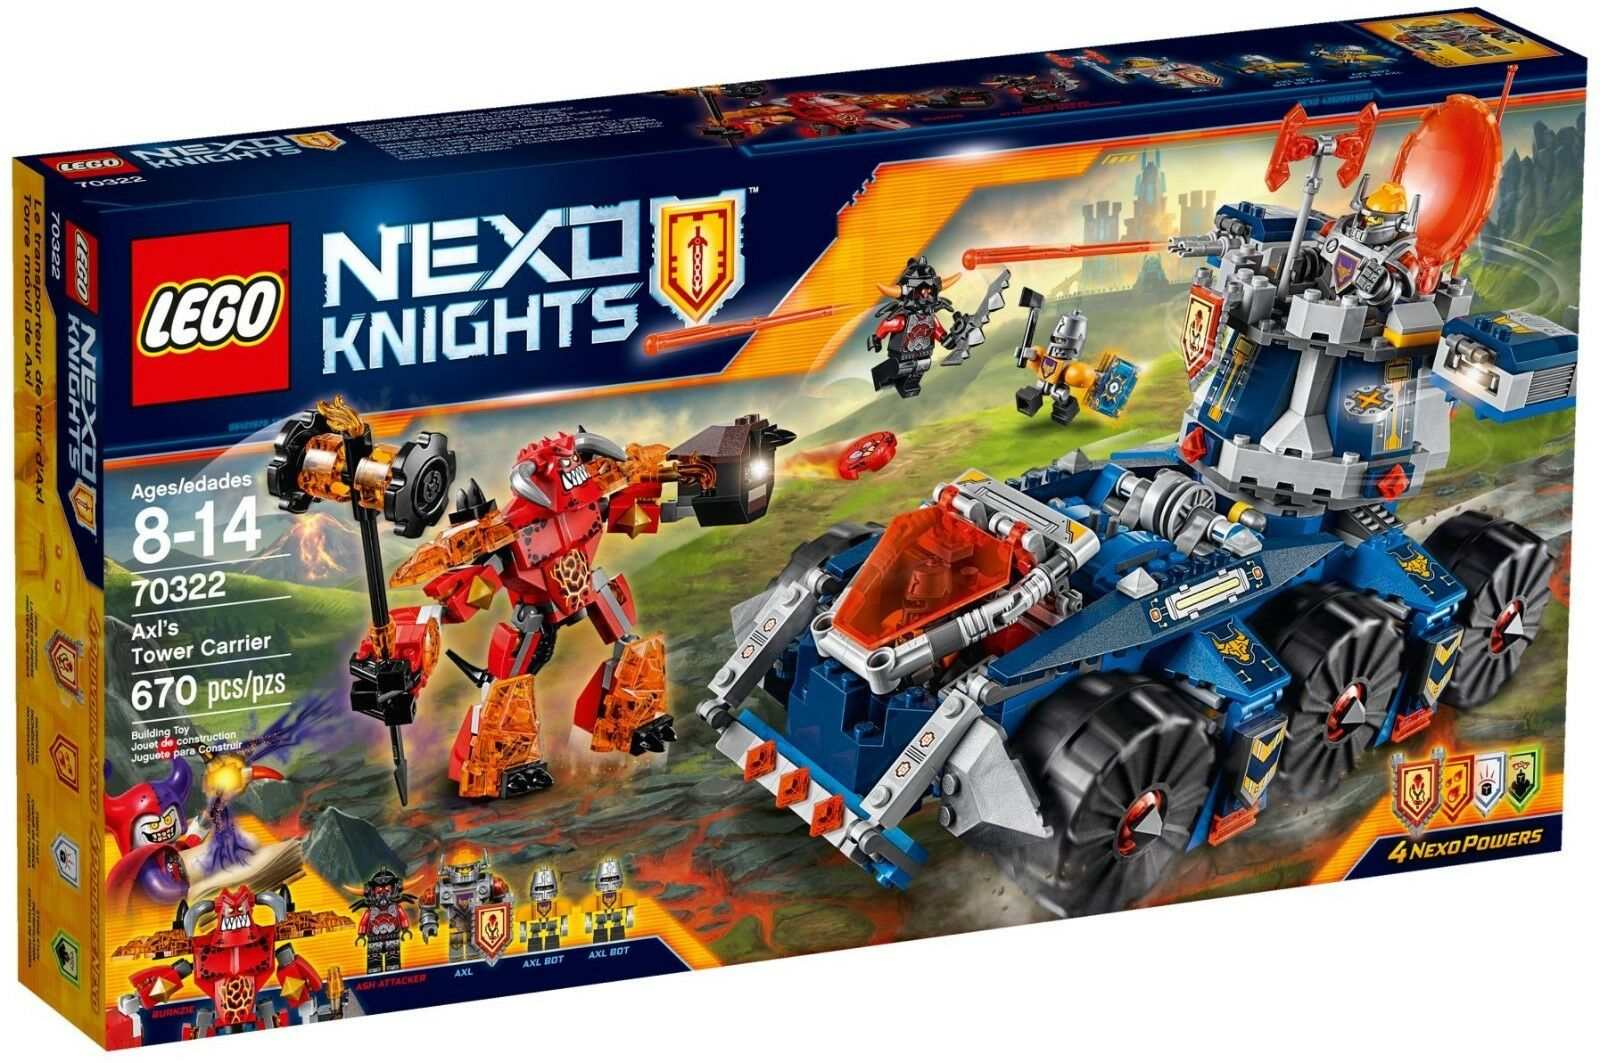 LEGO Nexo Knights Axl's Tower Carrier Playset - 70322 - RETIRED